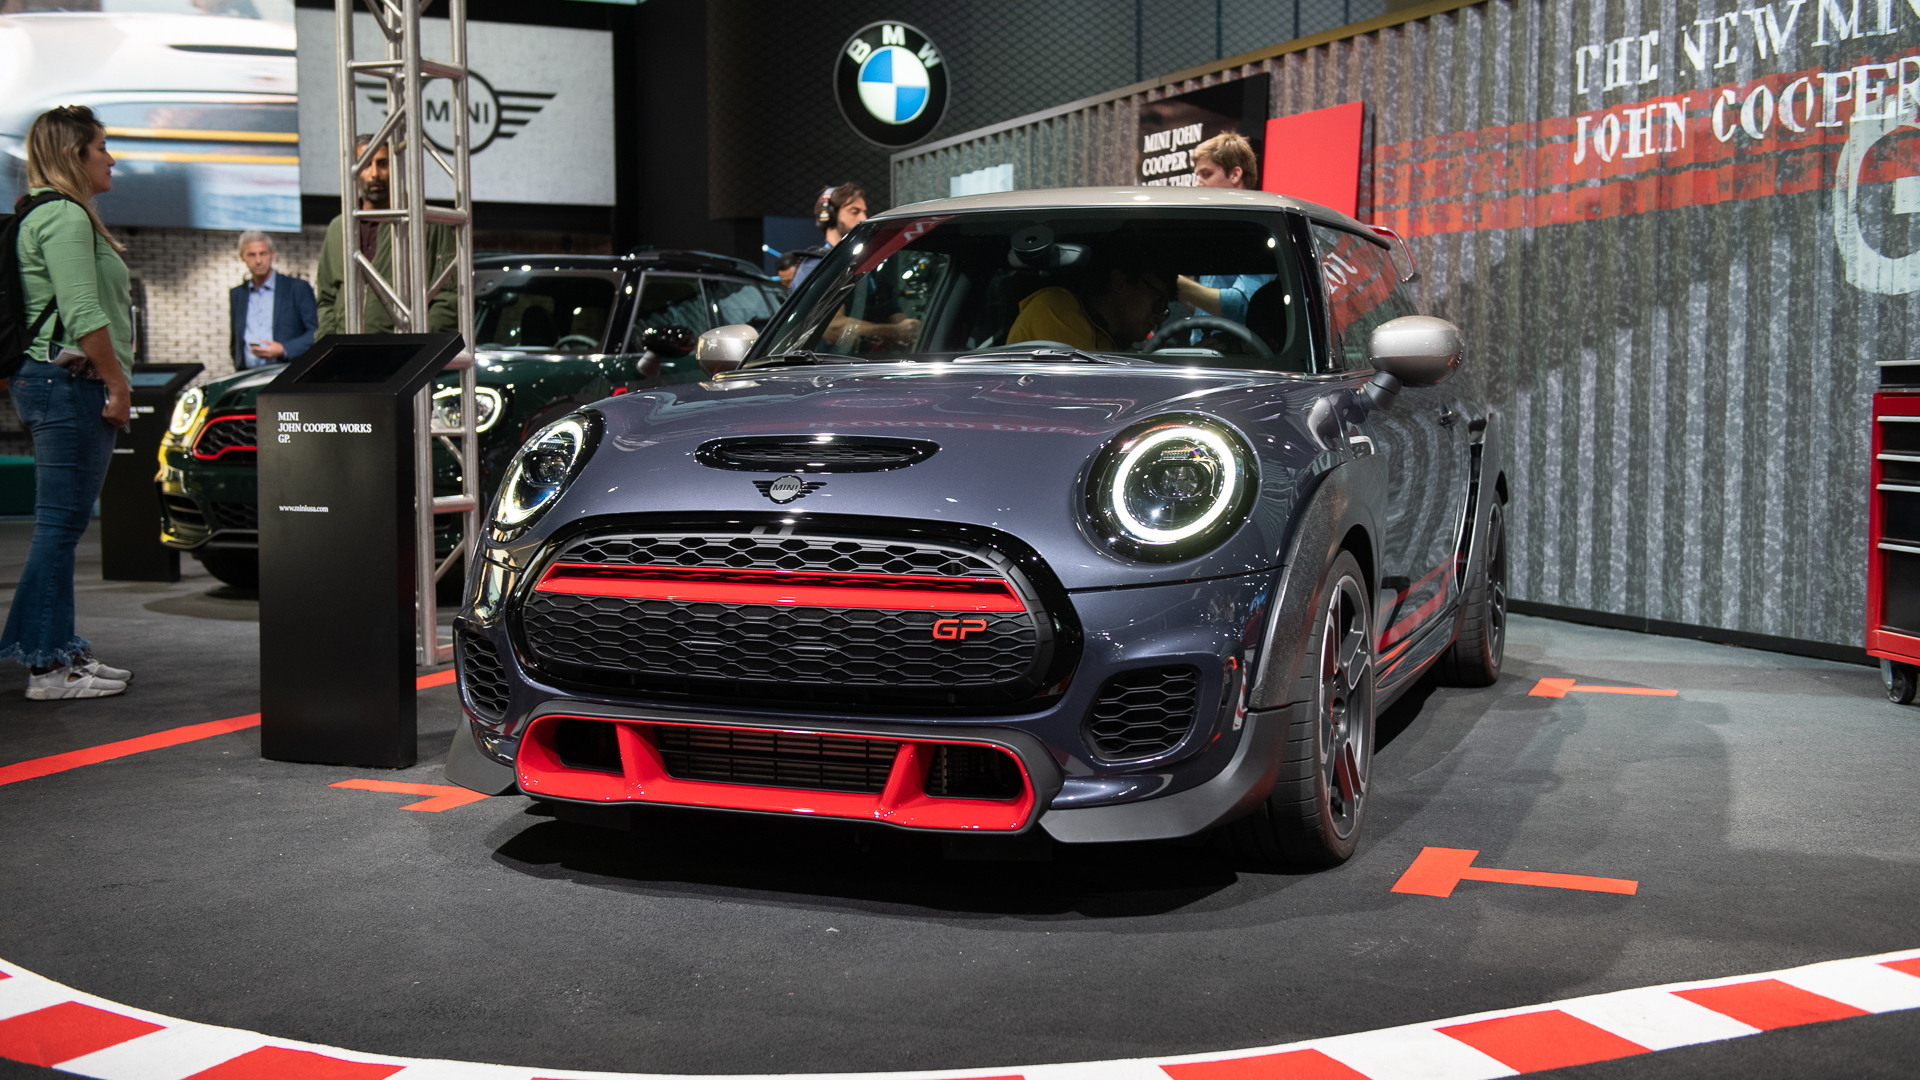 2021 Mini John Cooper Works GP, 2019 LA Auto Show